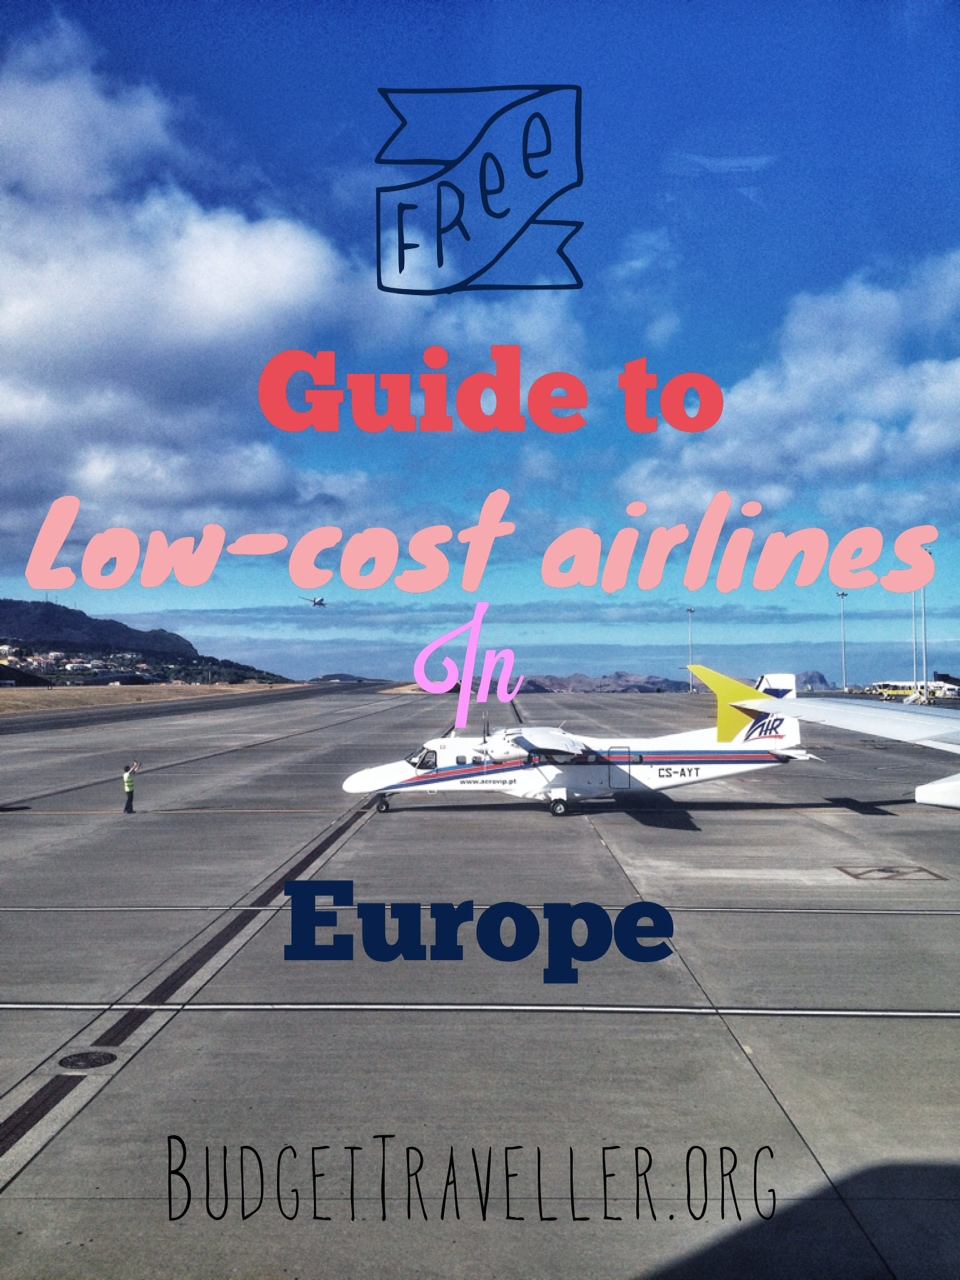 The ultimate guide to low-cost airlines in Europe